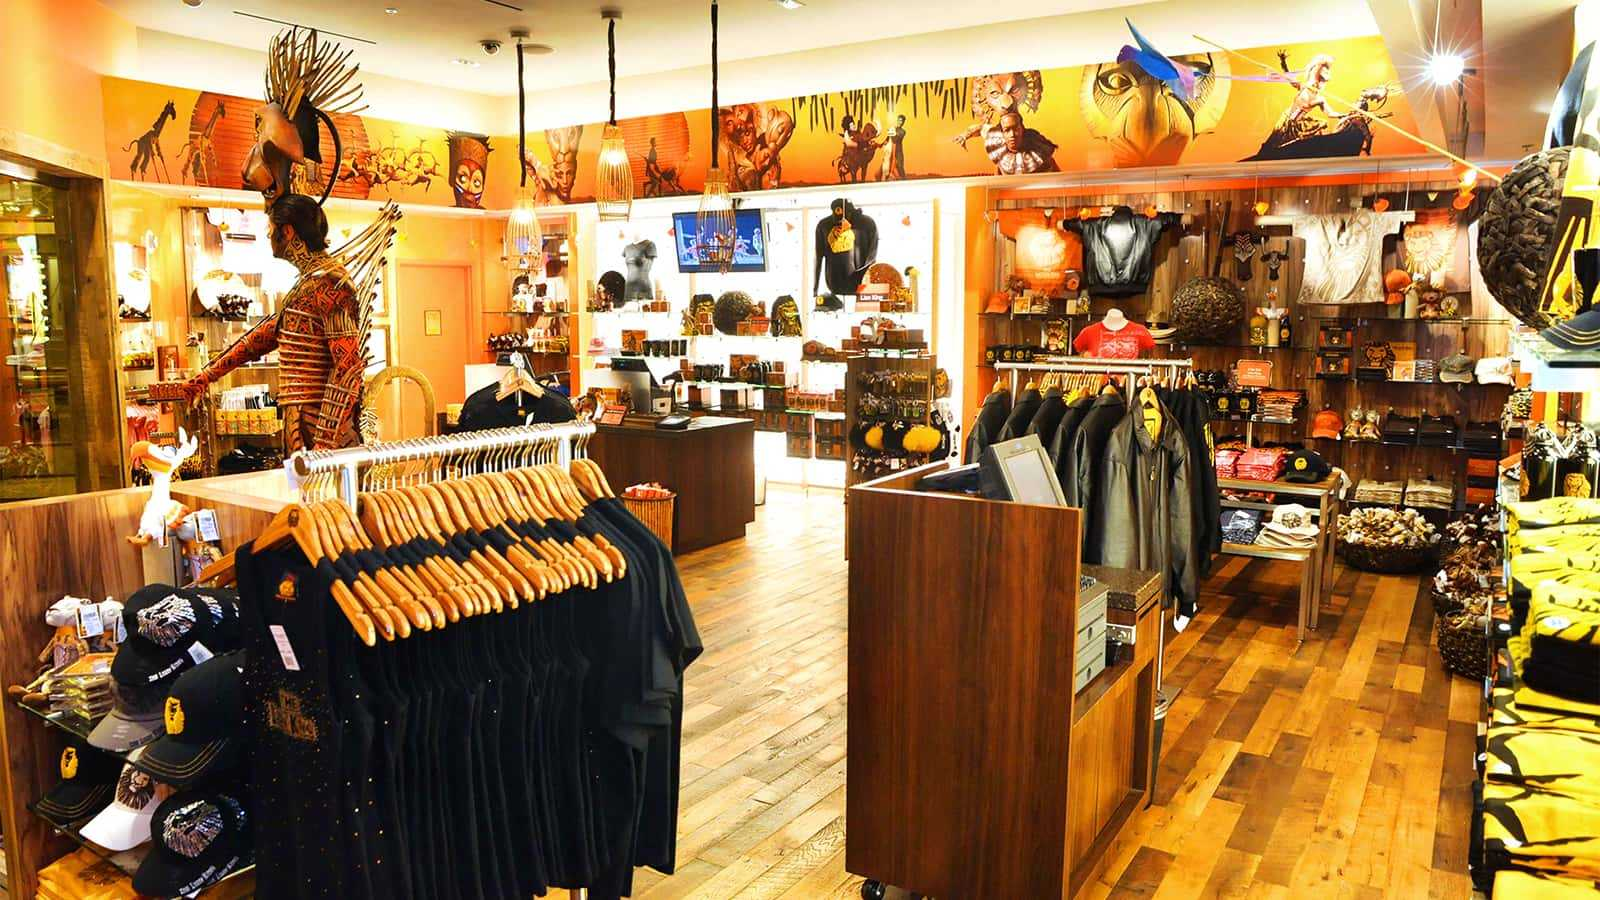 Racks and fixtures of the Mandalay Bay Lion King Theater Store.